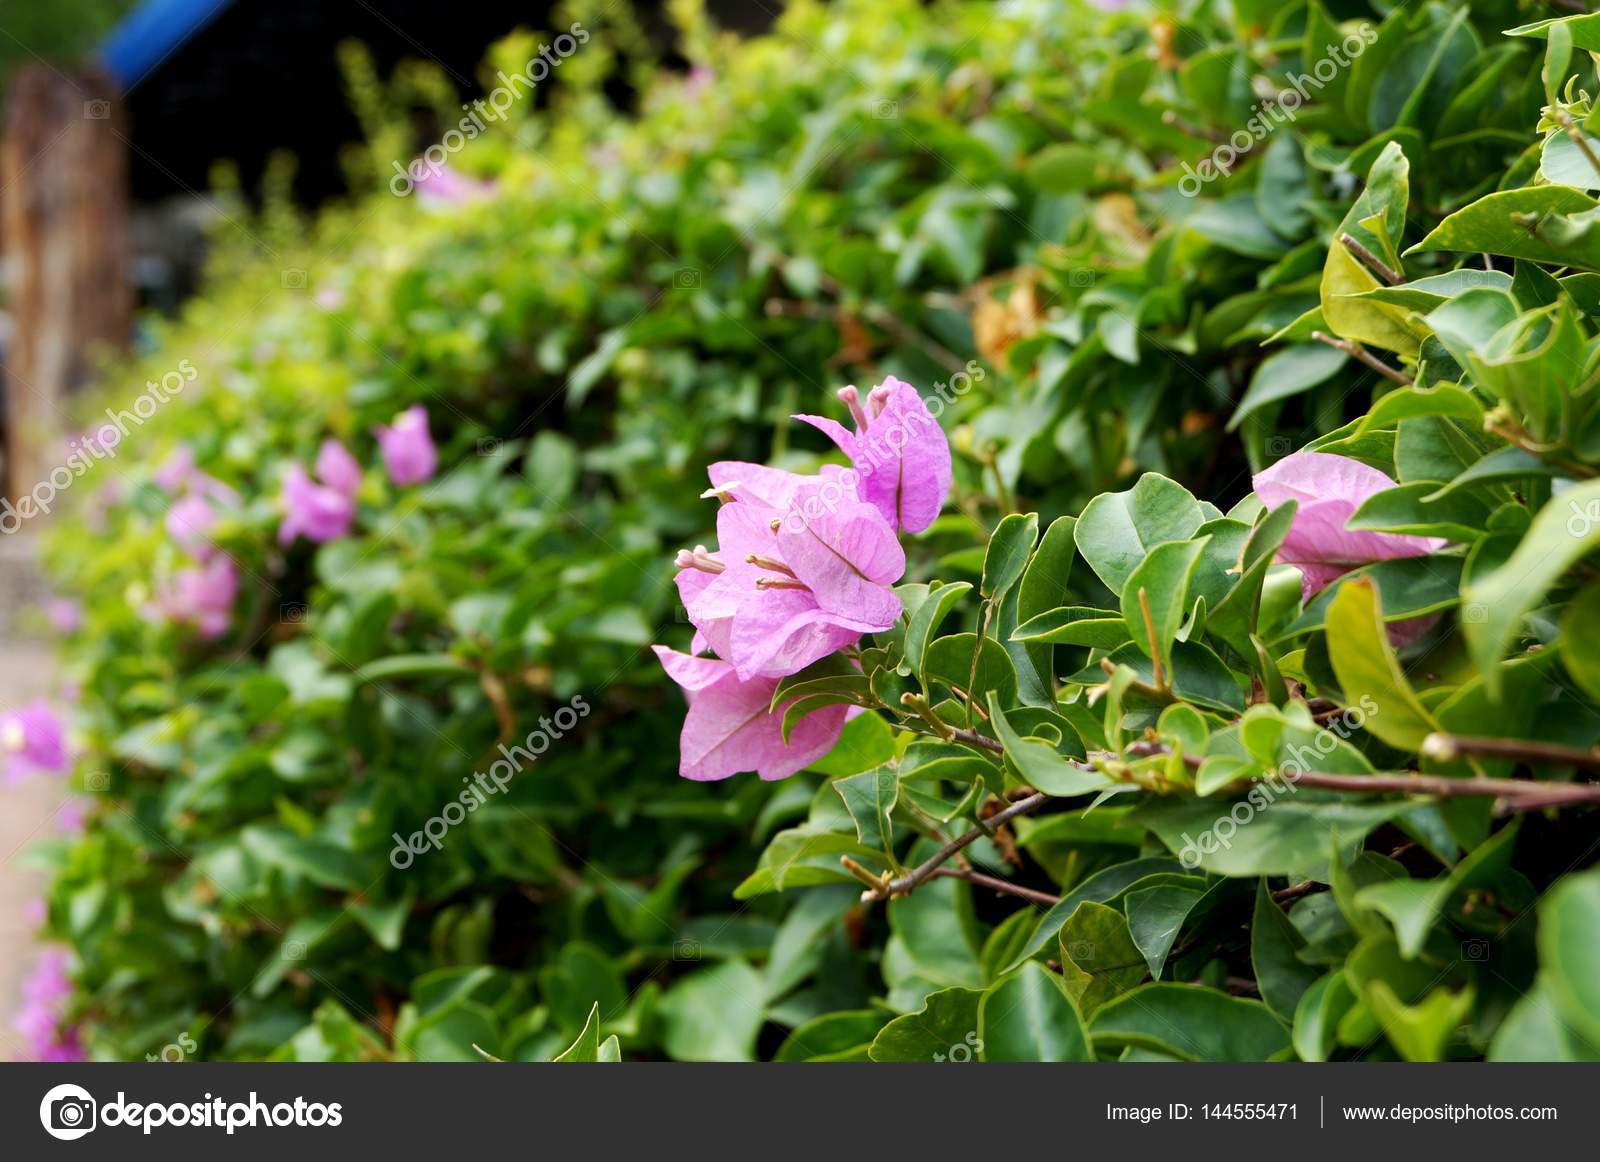 Flowering shrub with small pink flowers stock photo chydanat flowering shrub with small pink flowers stock photo mightylinksfo